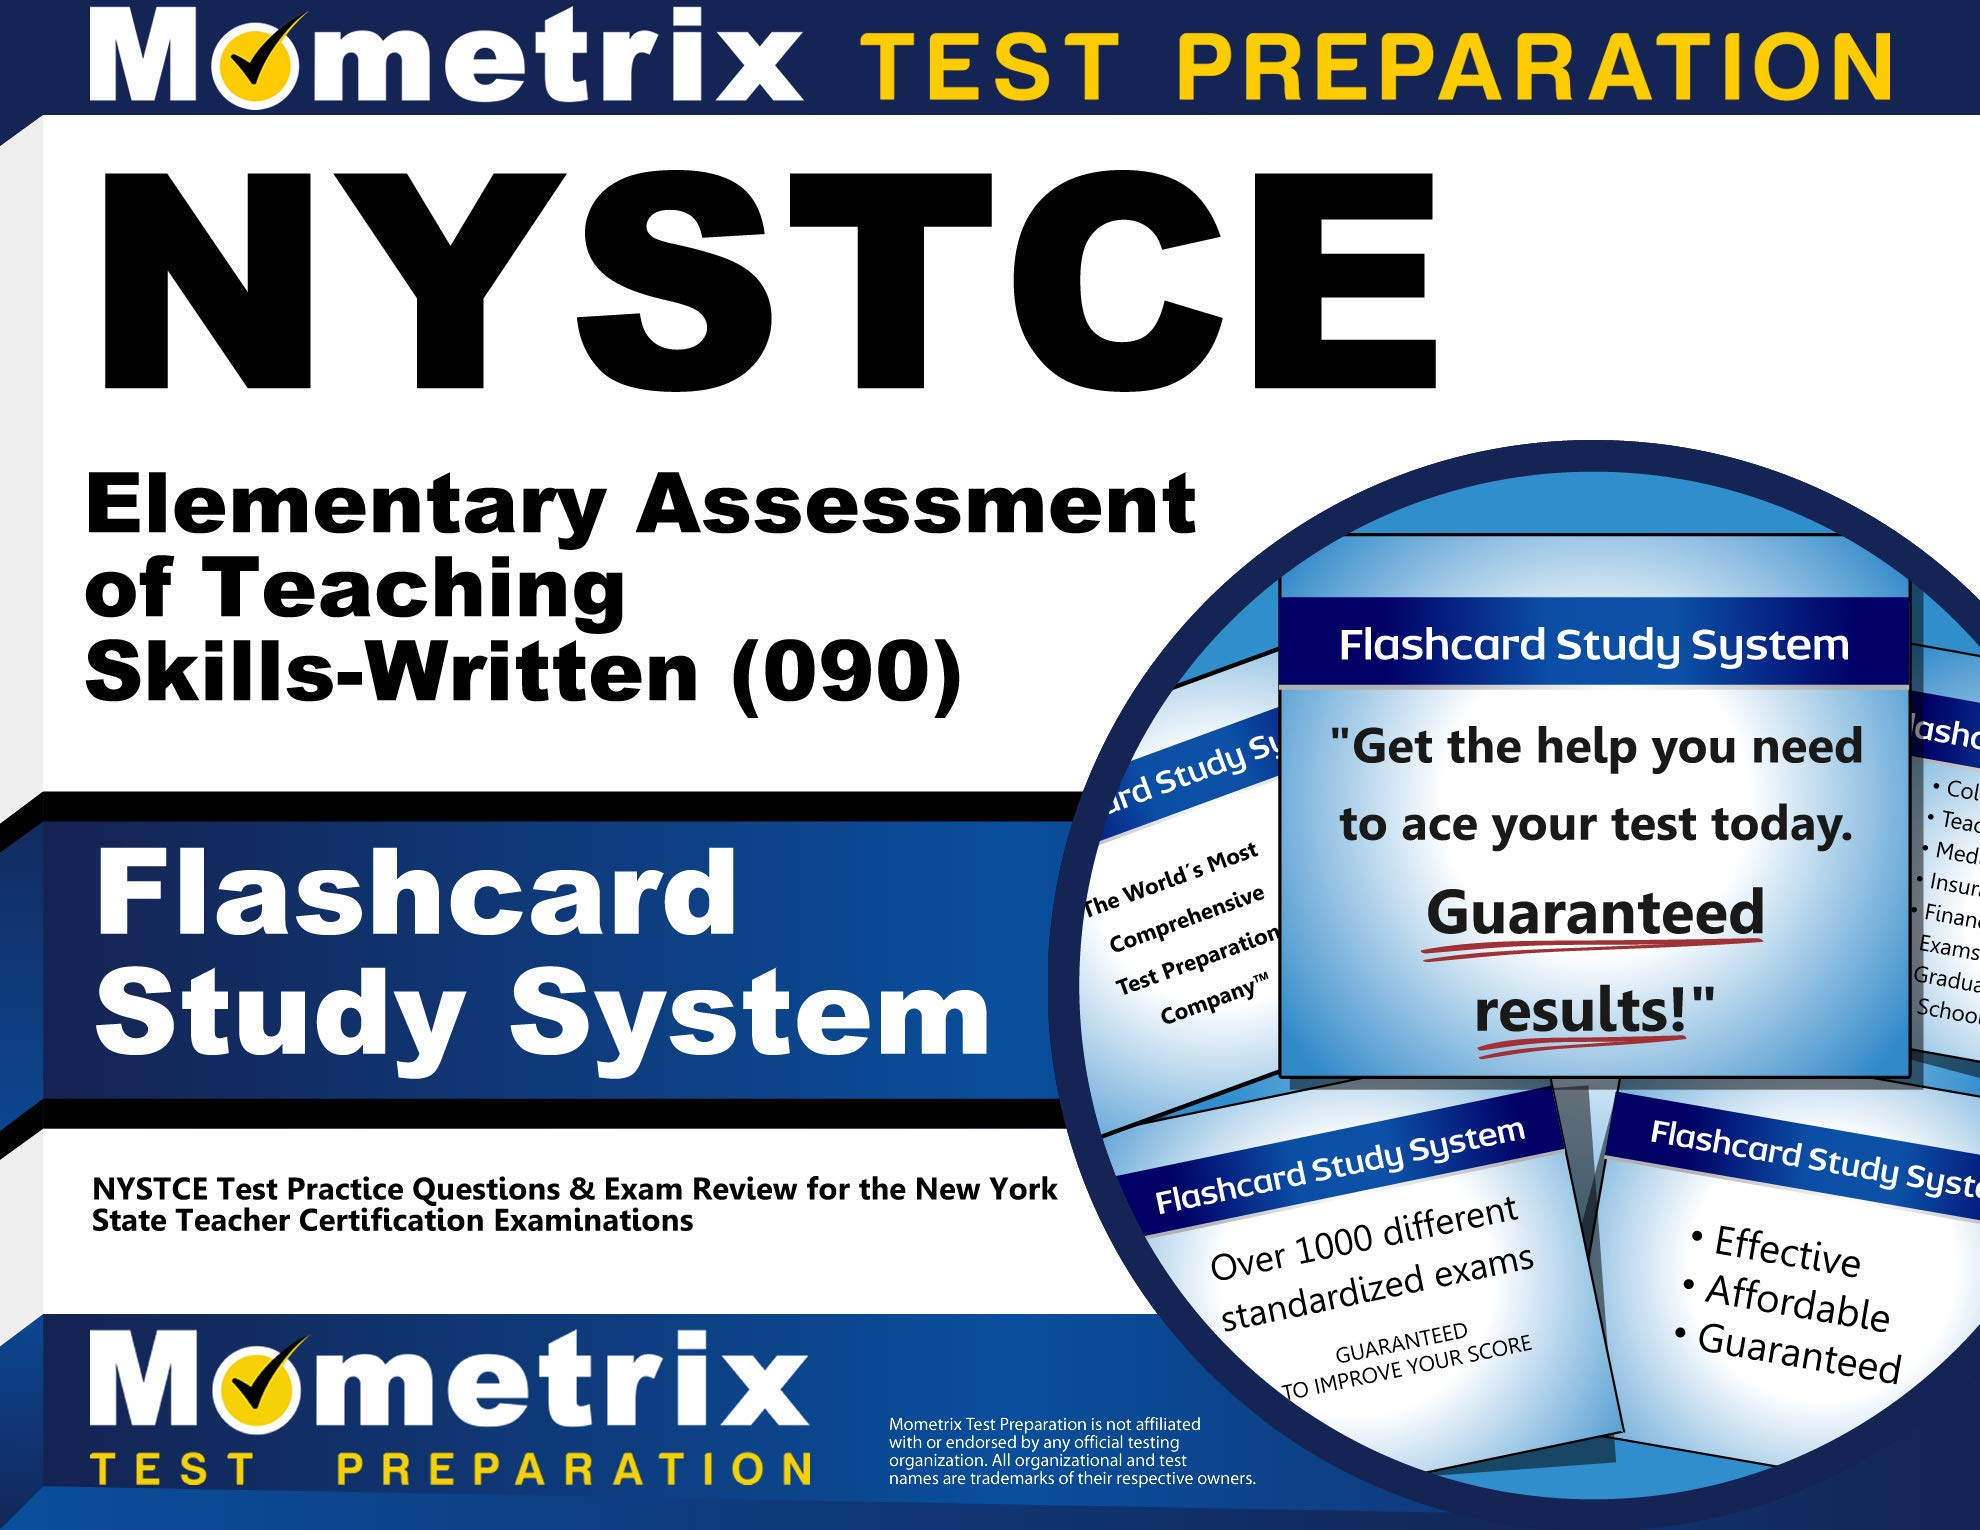 NYSTCE Elementary Assessment of Teaching Skills-Written (090) Flashcard Study System: NYSTCE Test Practice Questions & Exam Review for the New York State Teacher Certification Examinations (Cards) by Mometrix Media LLC